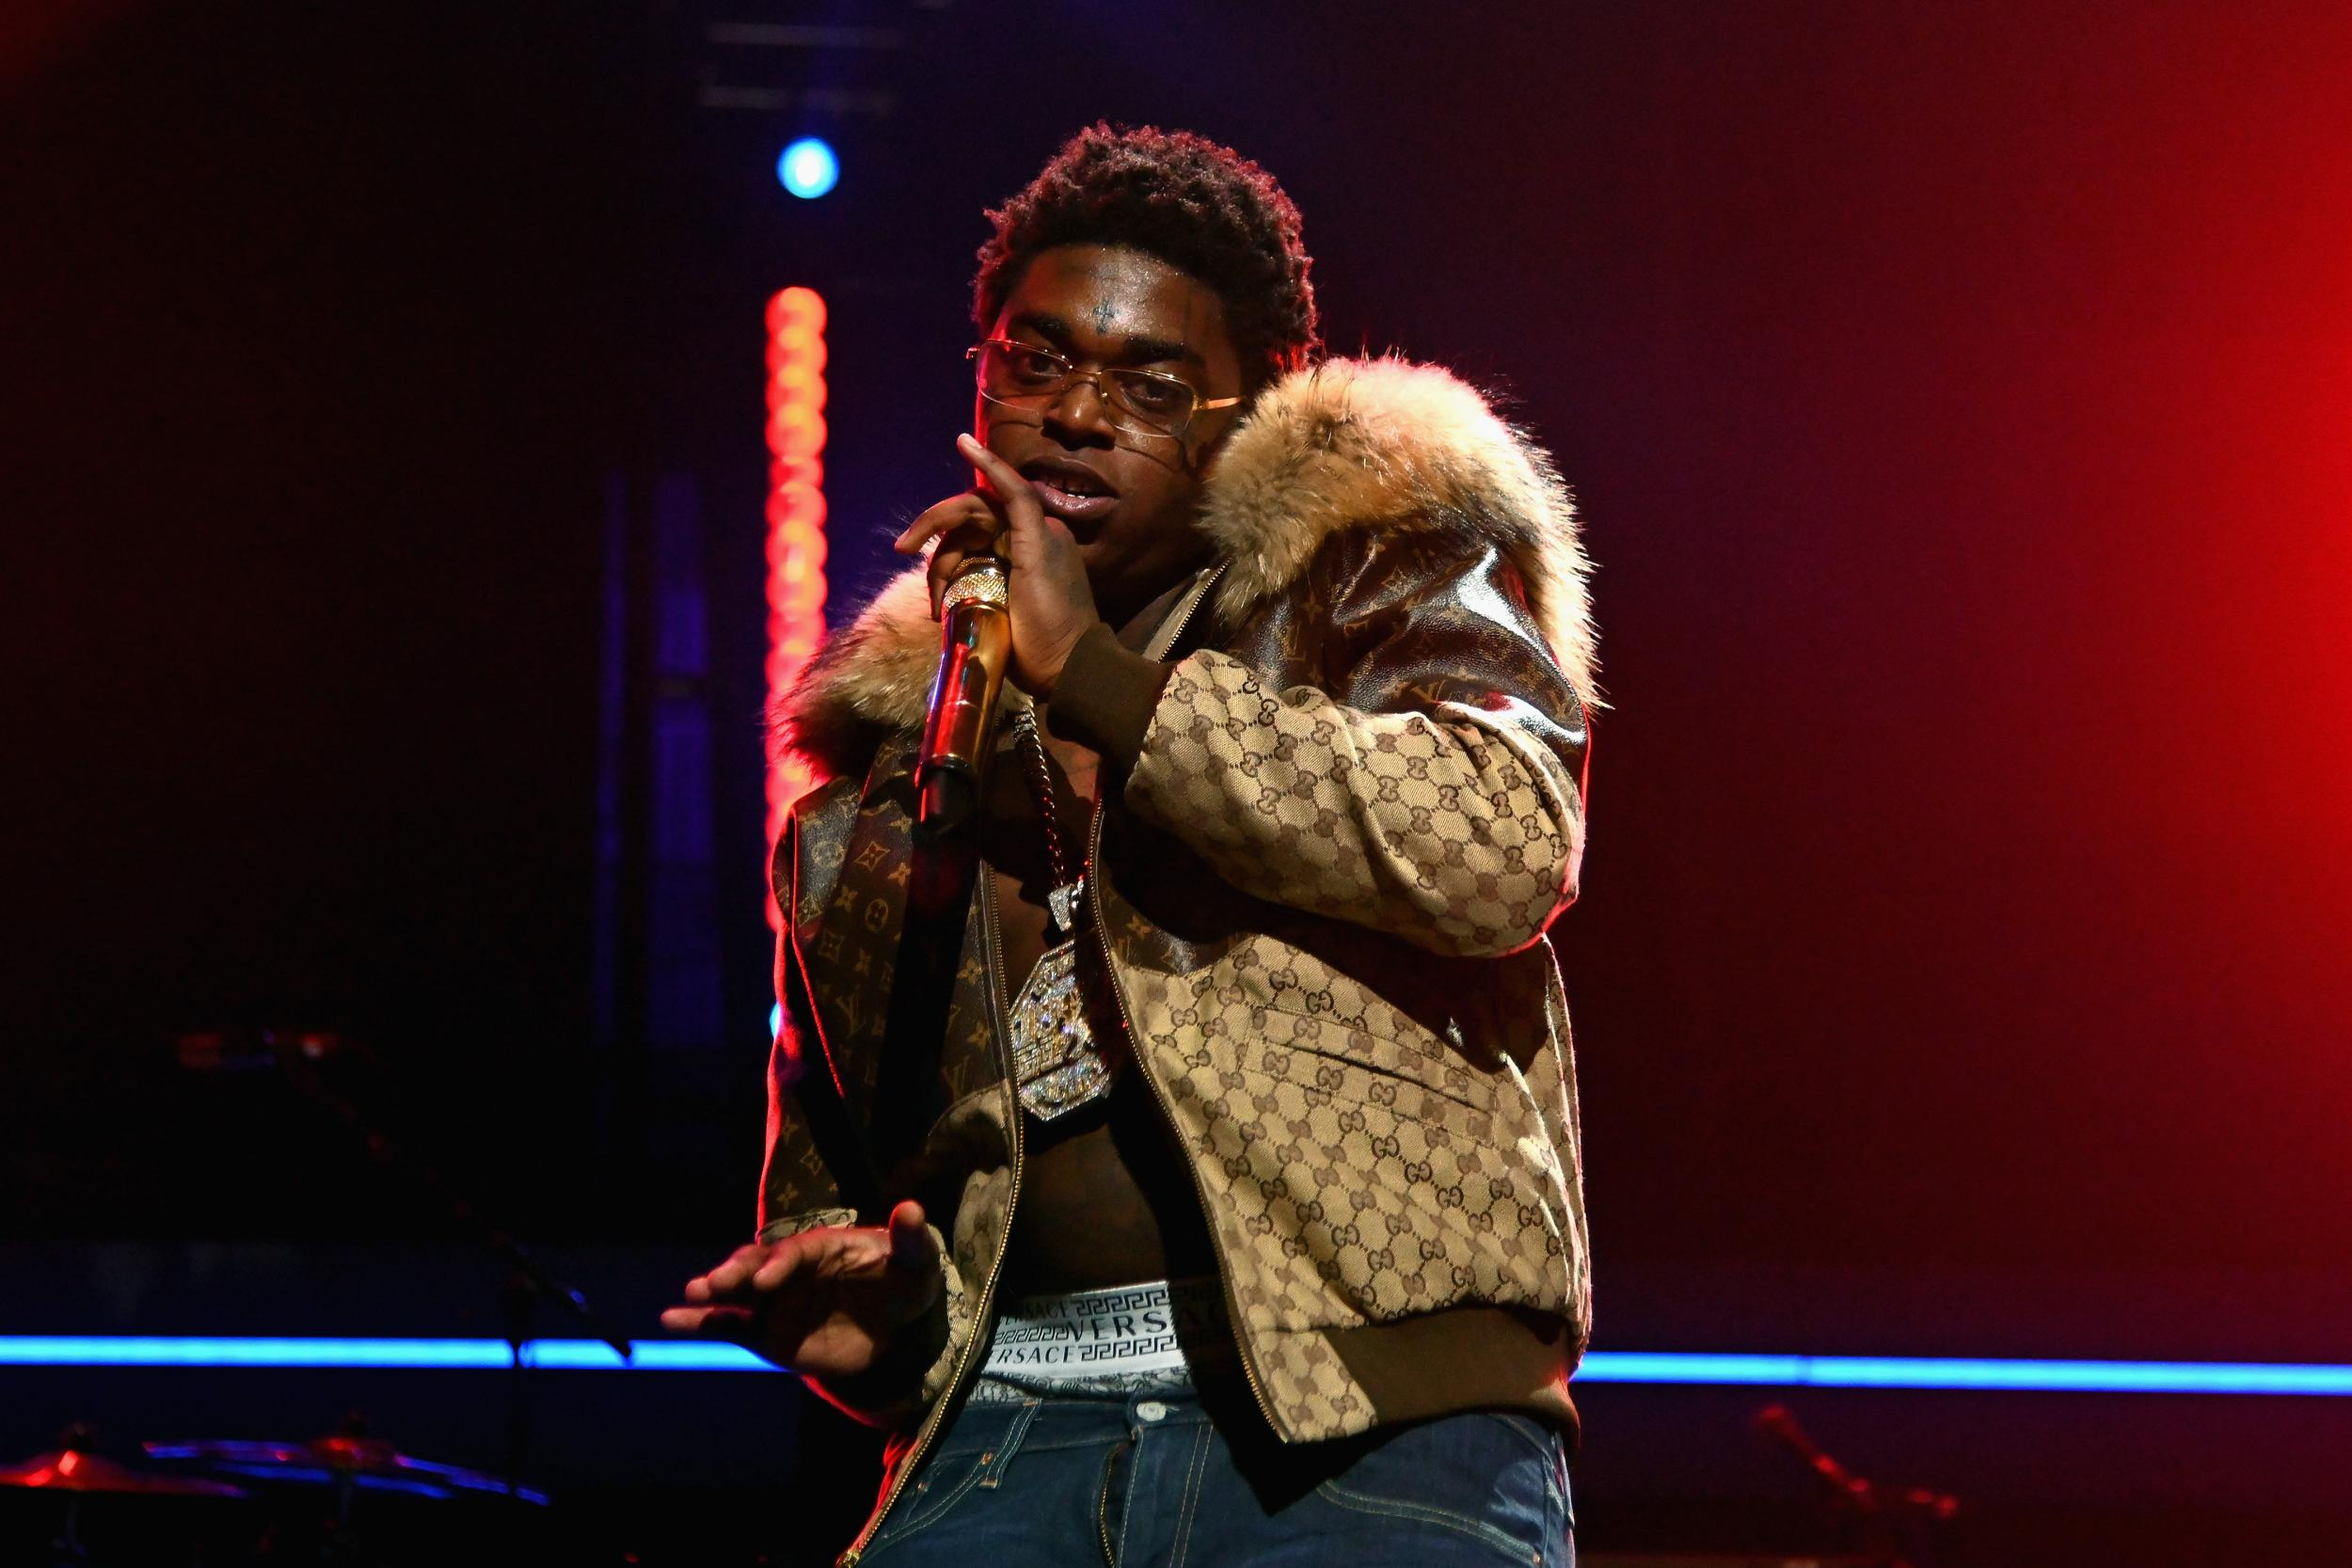 Kodak Black condemned for 'disrespectful' comments about Nipsey Hussle's girlfriend